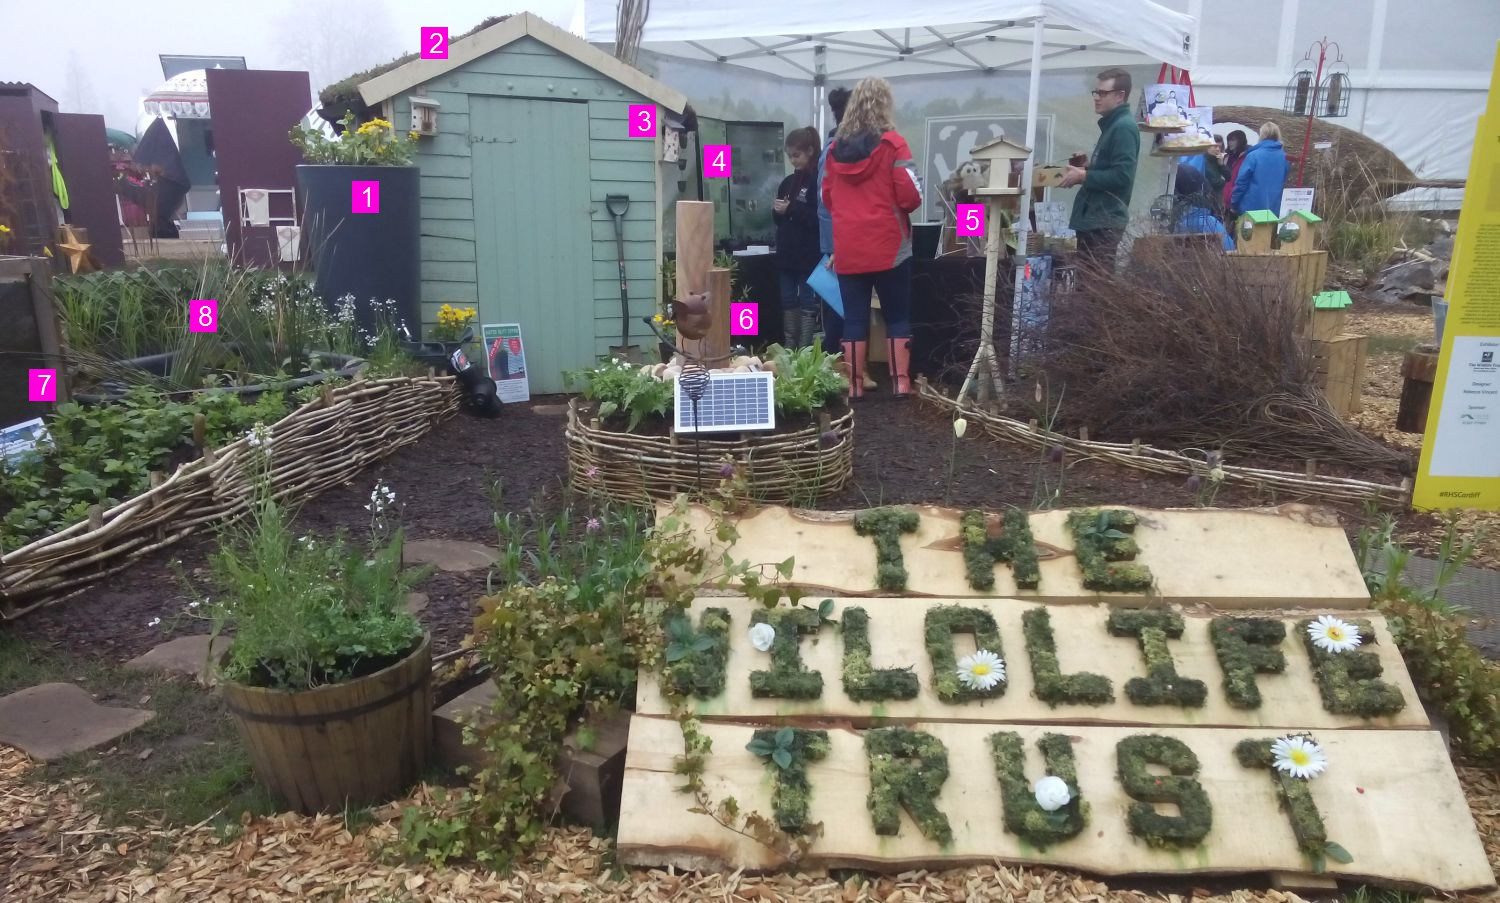 The Wildlife Trust's Rain Garden at the RHS Flower Show Cardiff 2018